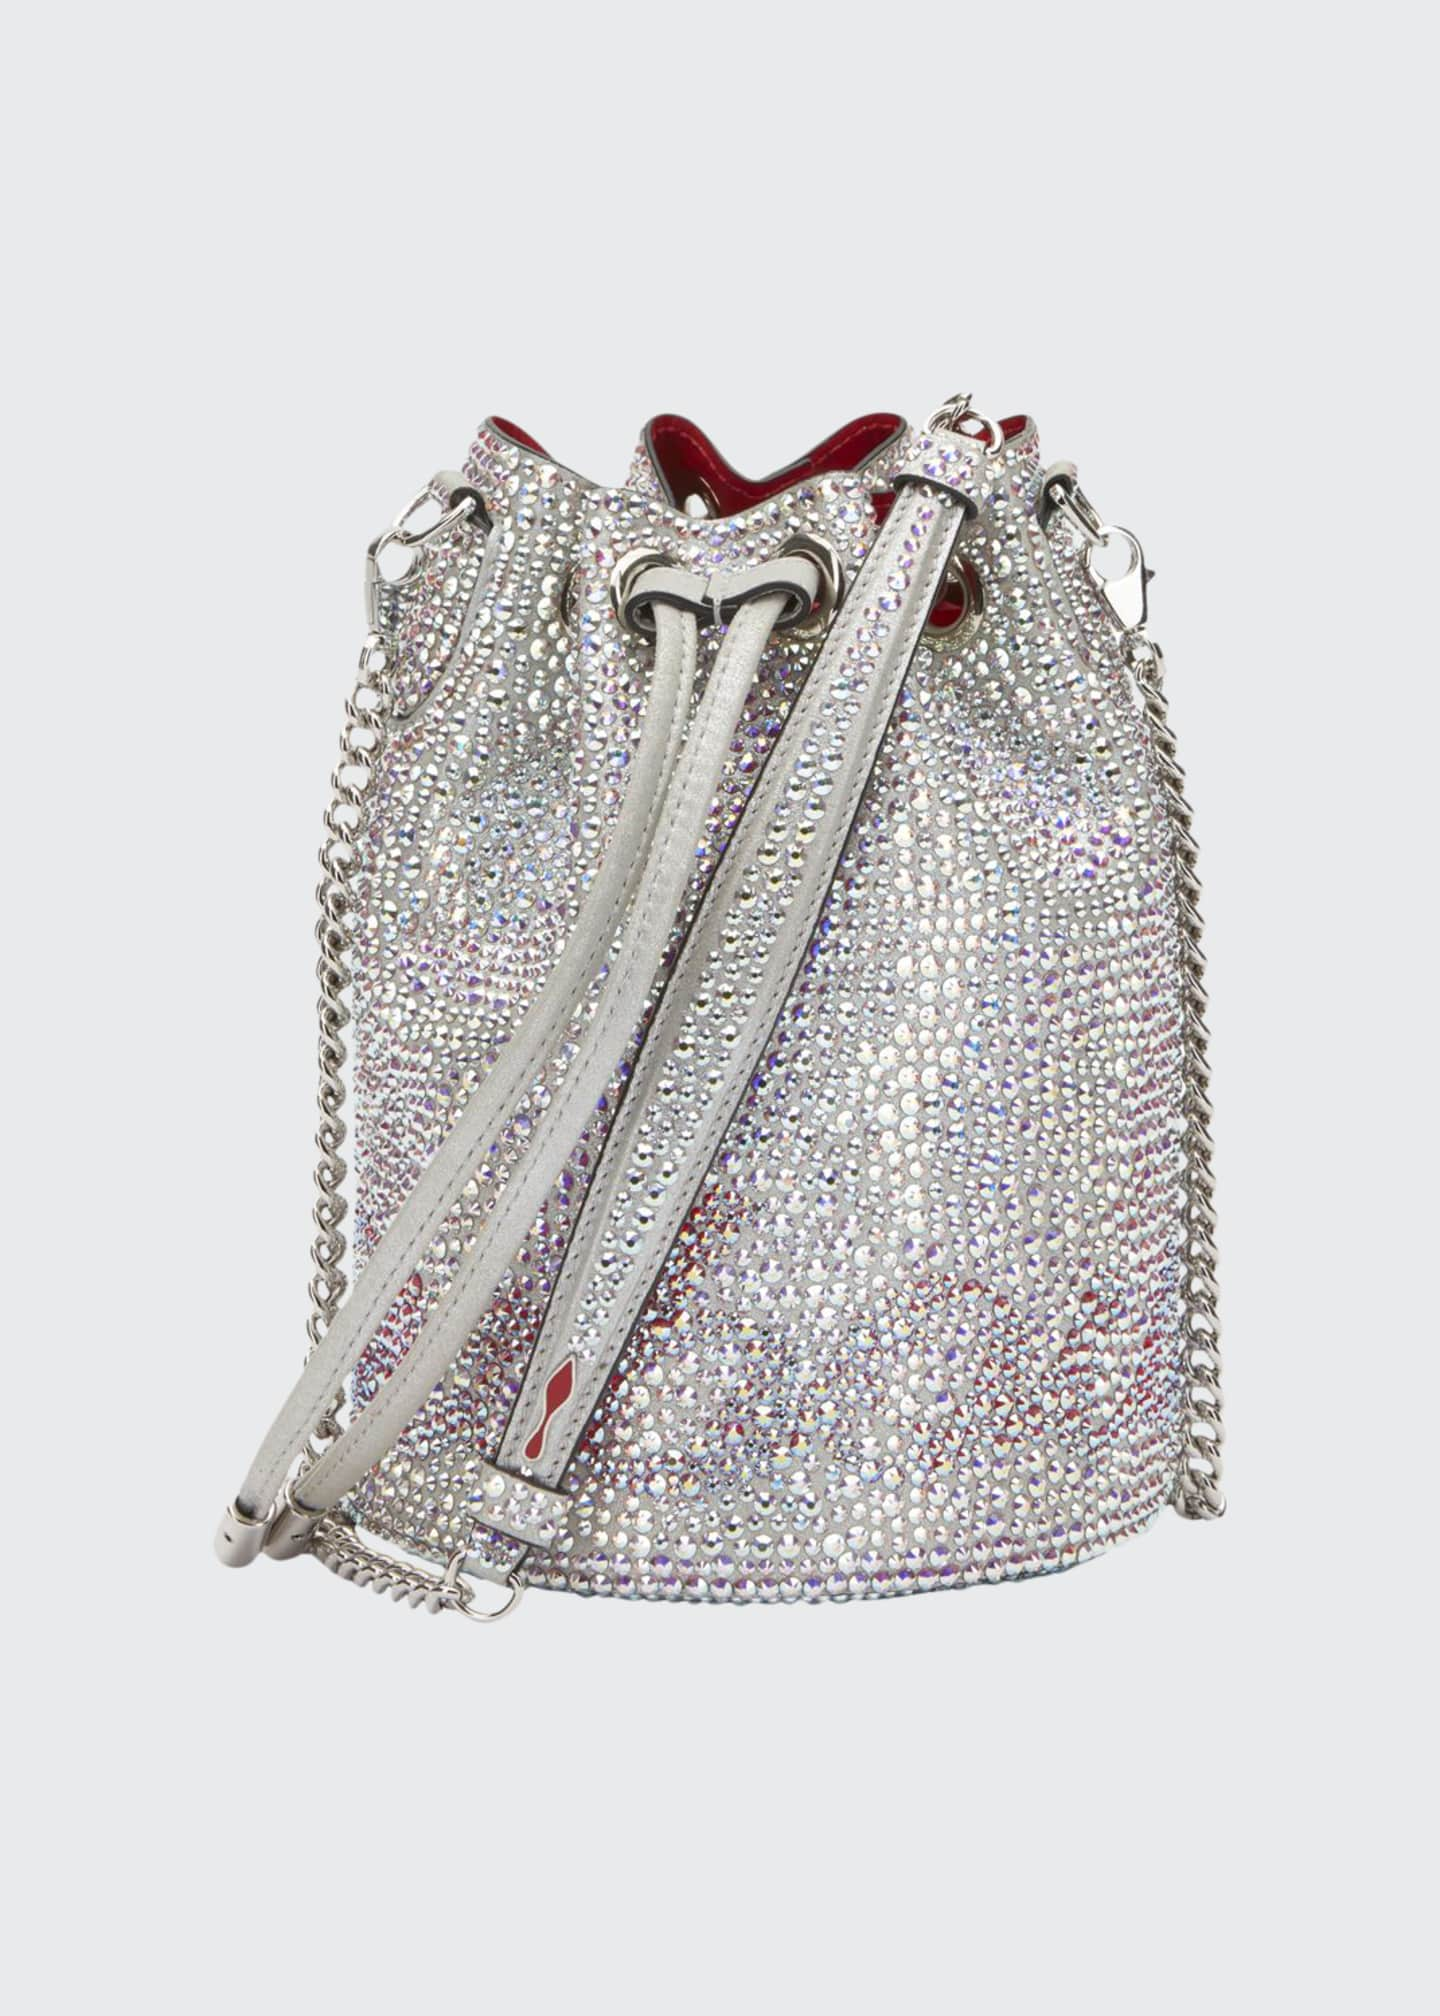 Christian Louboutin Marie Jane Crystal-Beaded Suede Bucket Bag